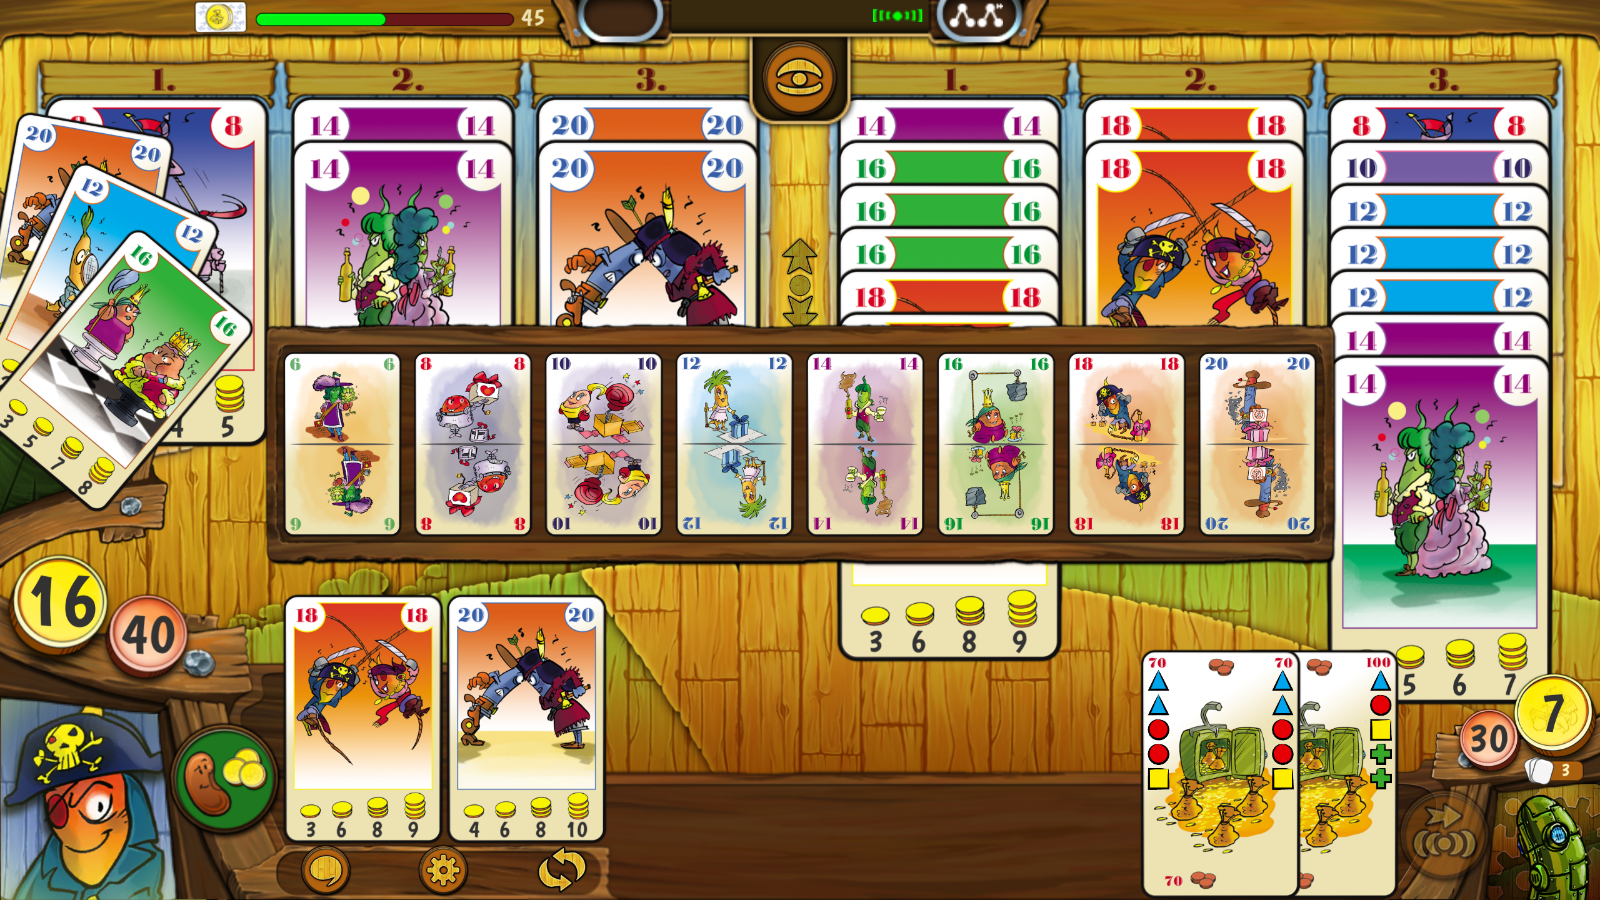 Bohnanza The Duel App Review - Pixelated Cardboard